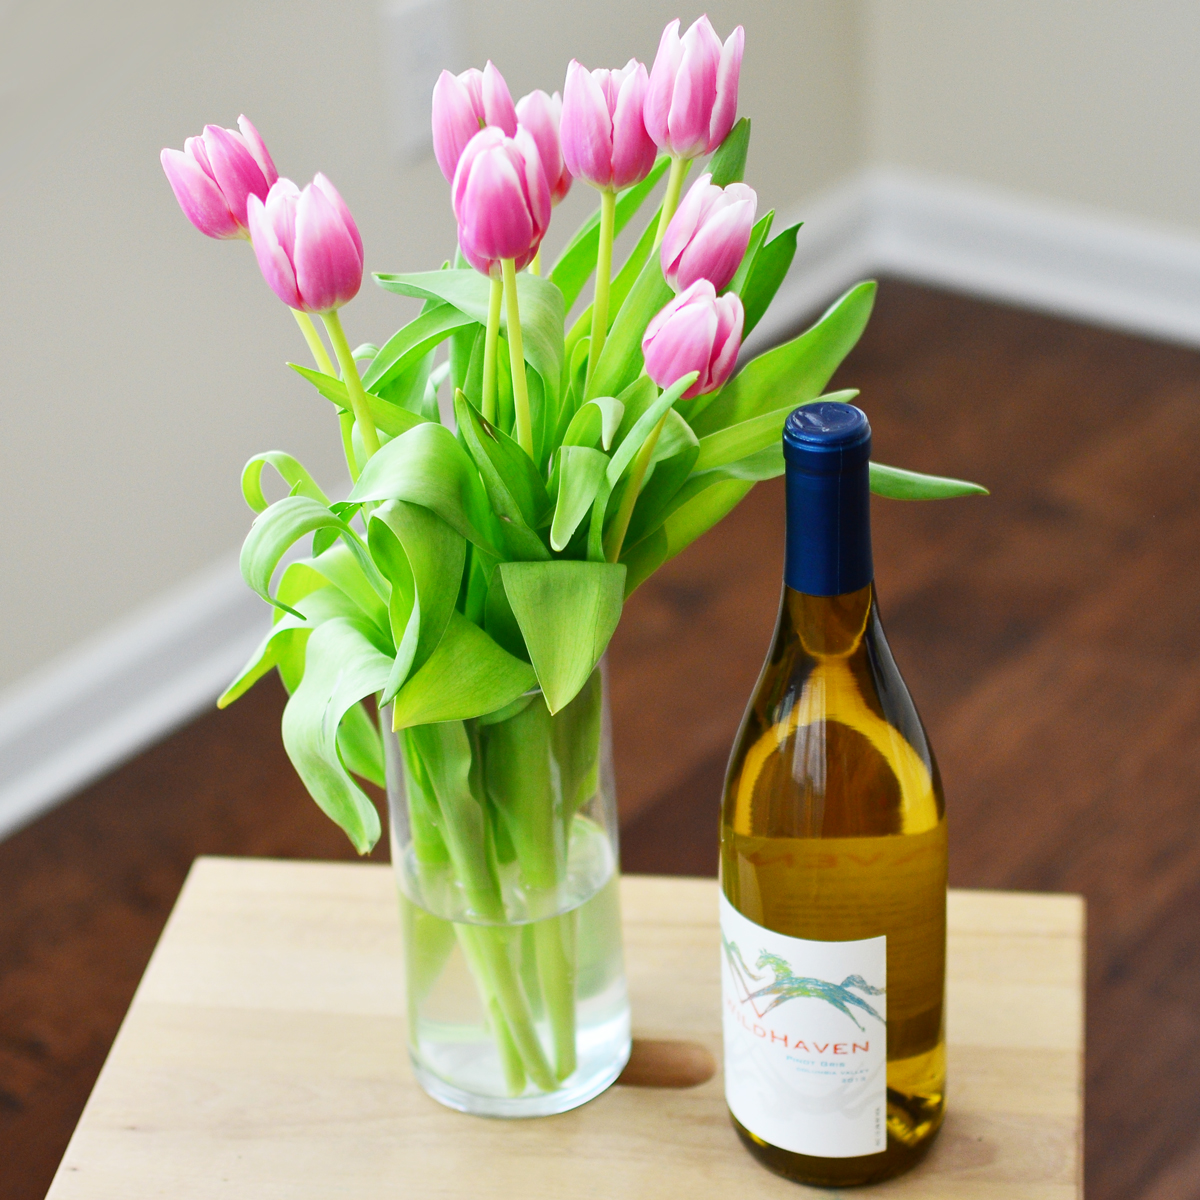 Housewarming ideas: flowers and wine